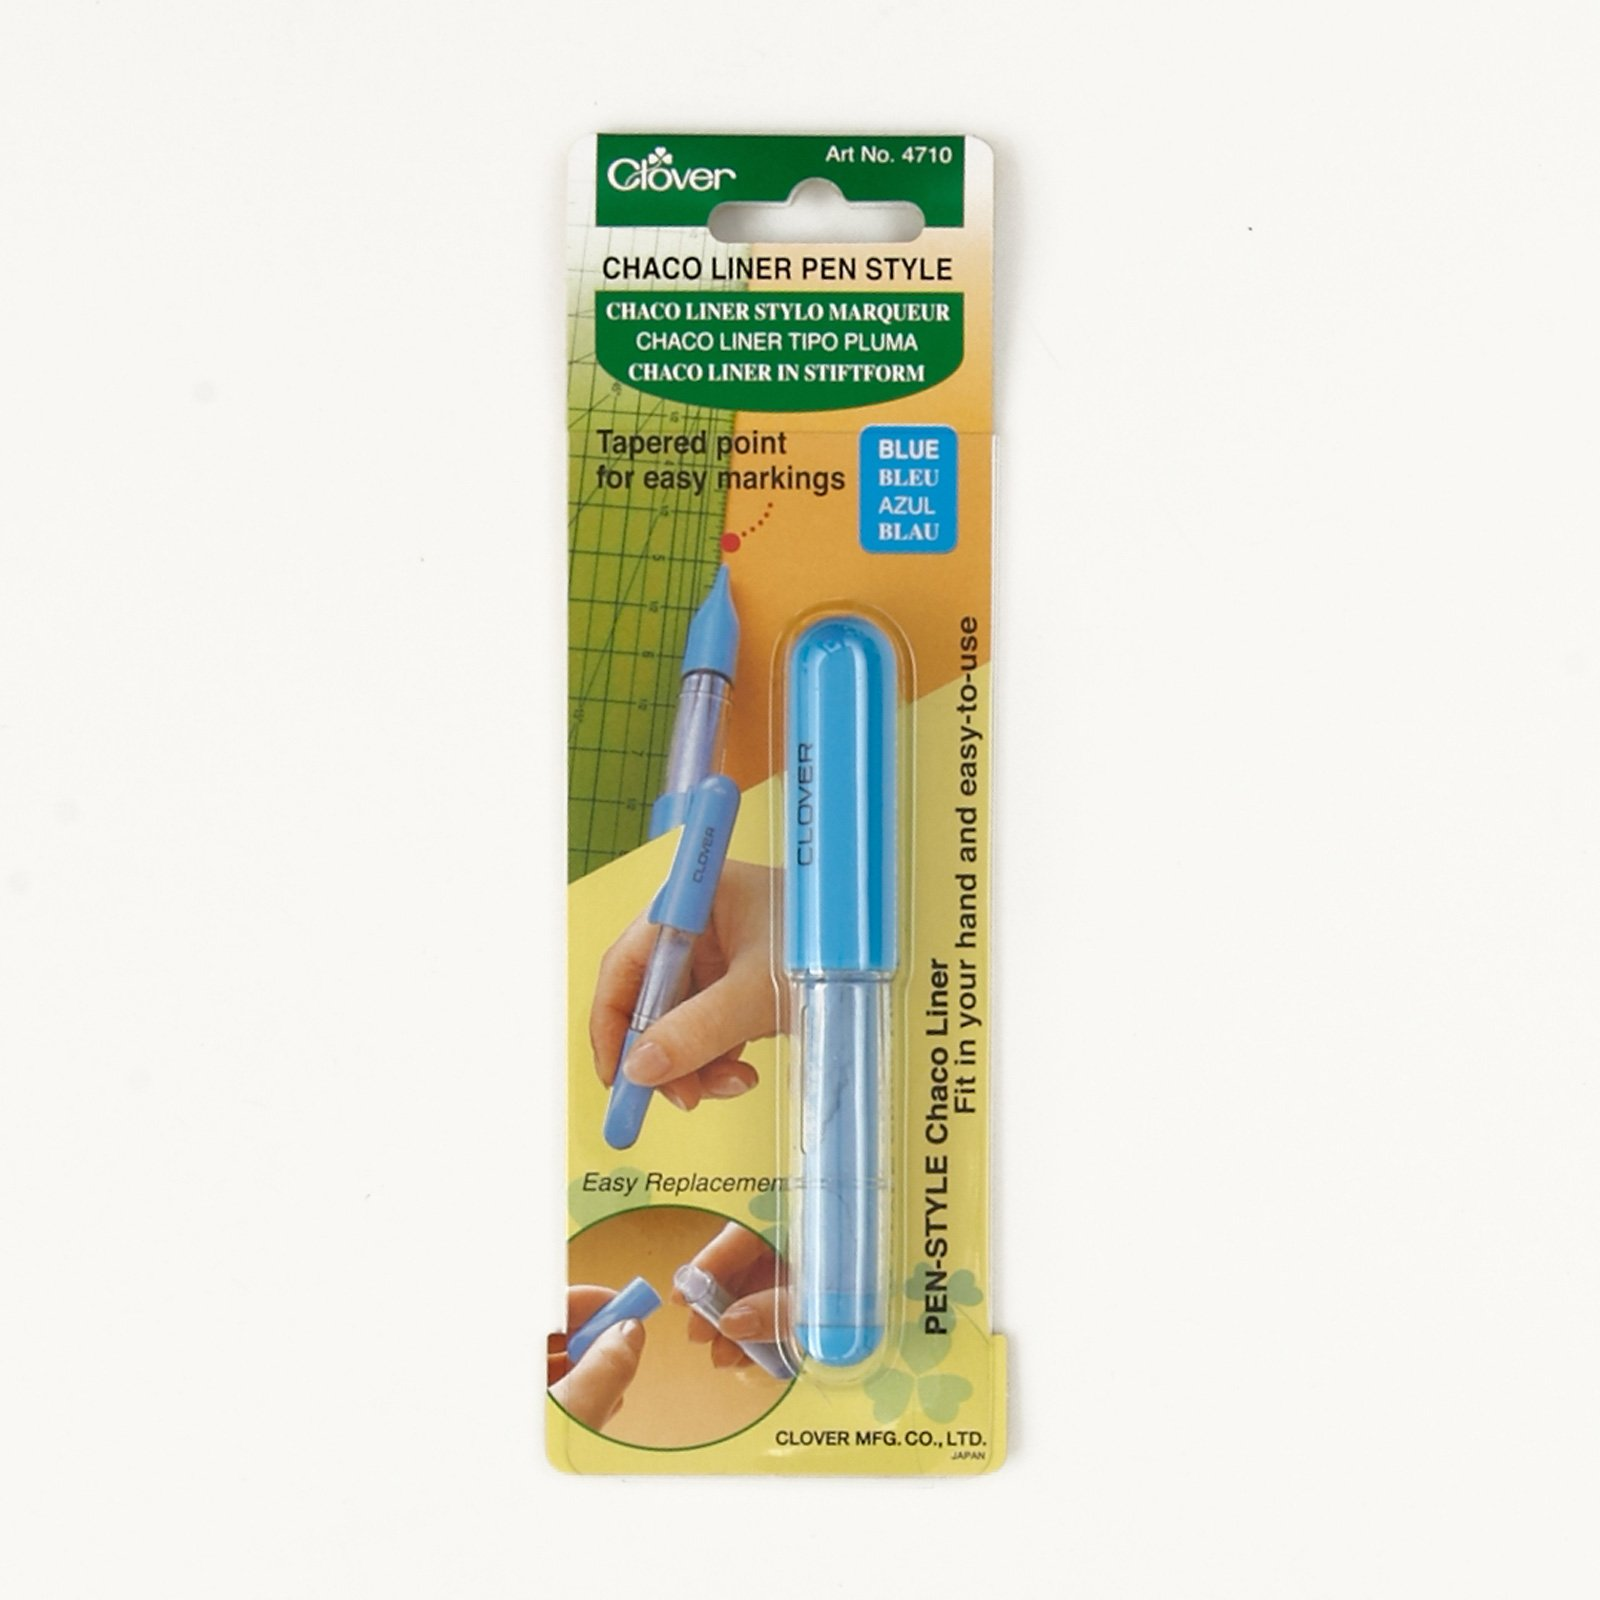 Clover Chaco Liner Pen Blue by Clover